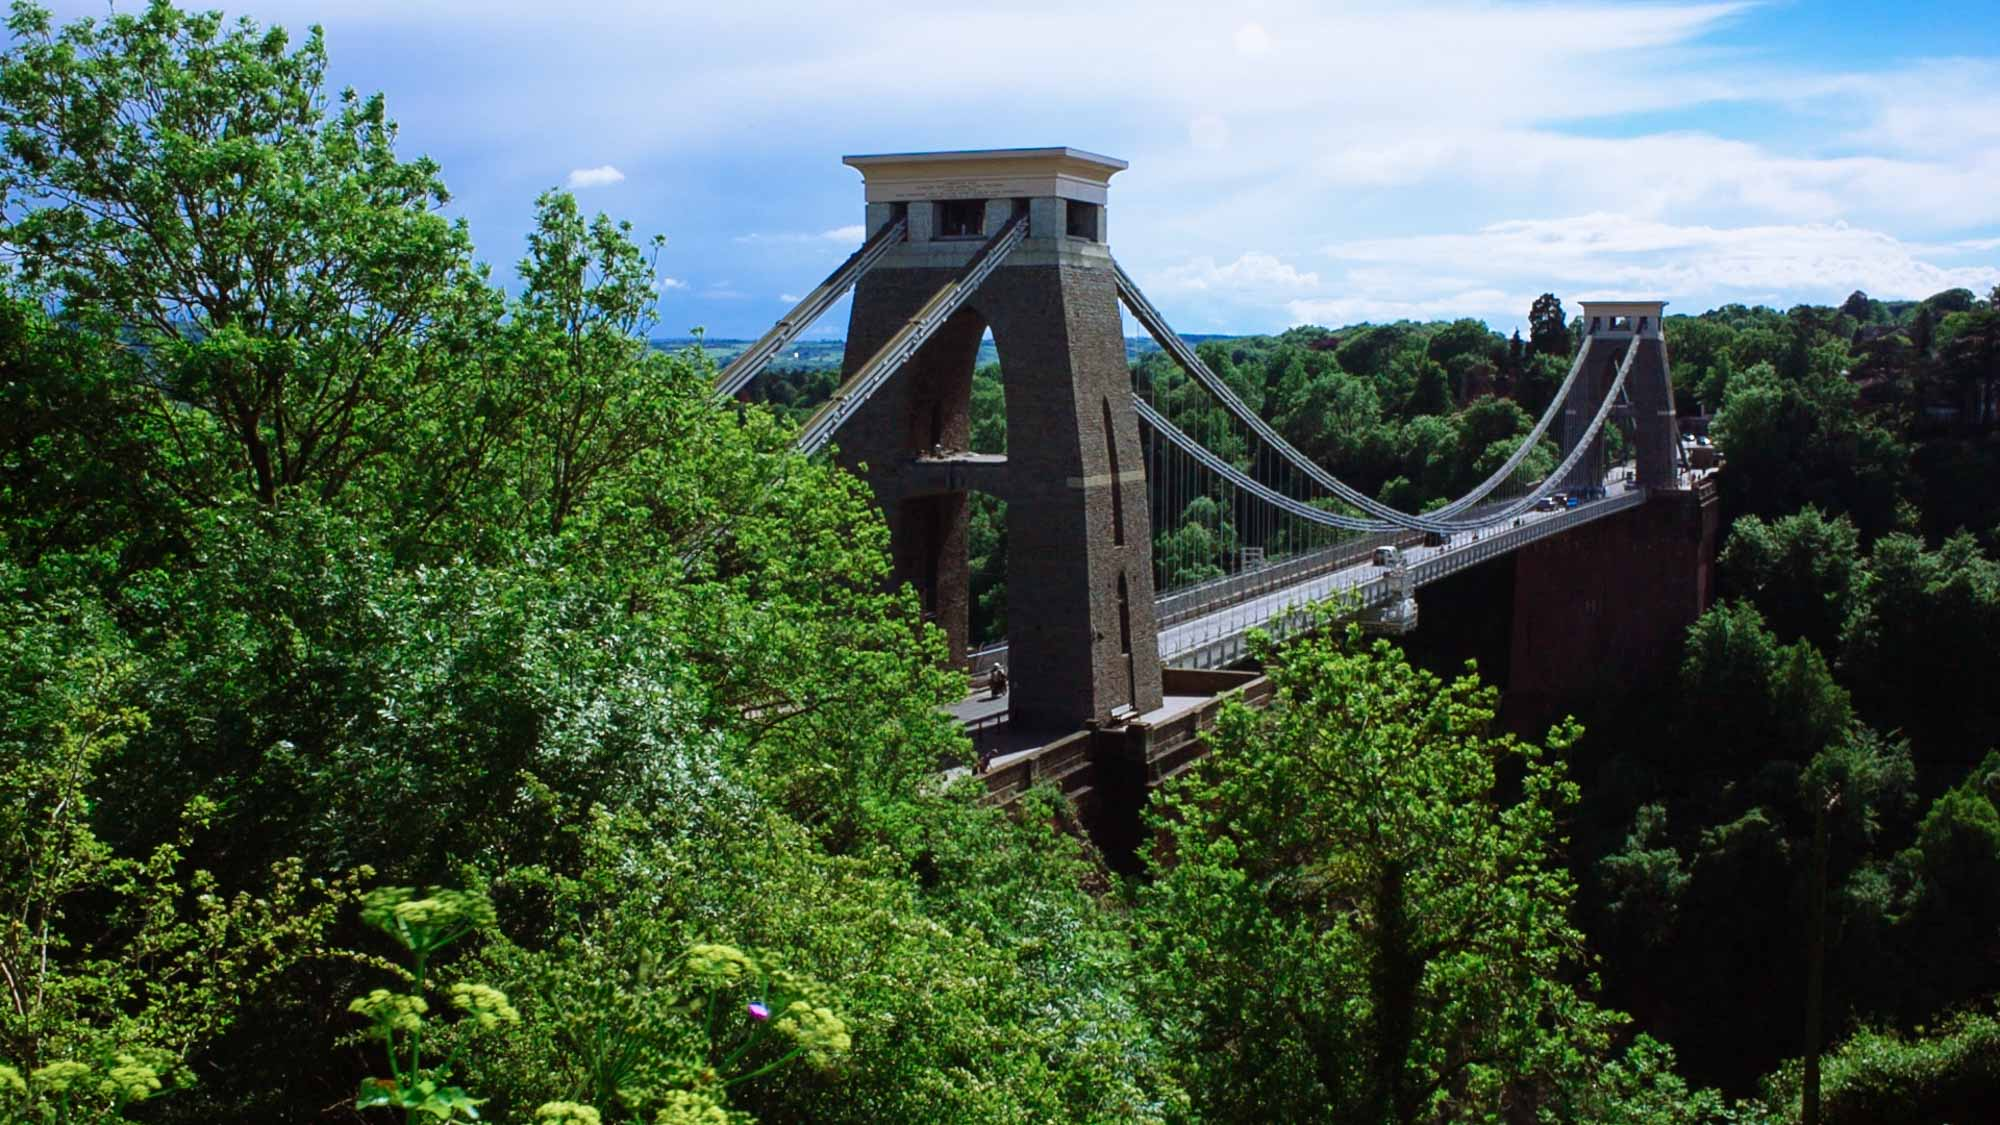 Things to do in Bristol - Clifton Suspension Bridge